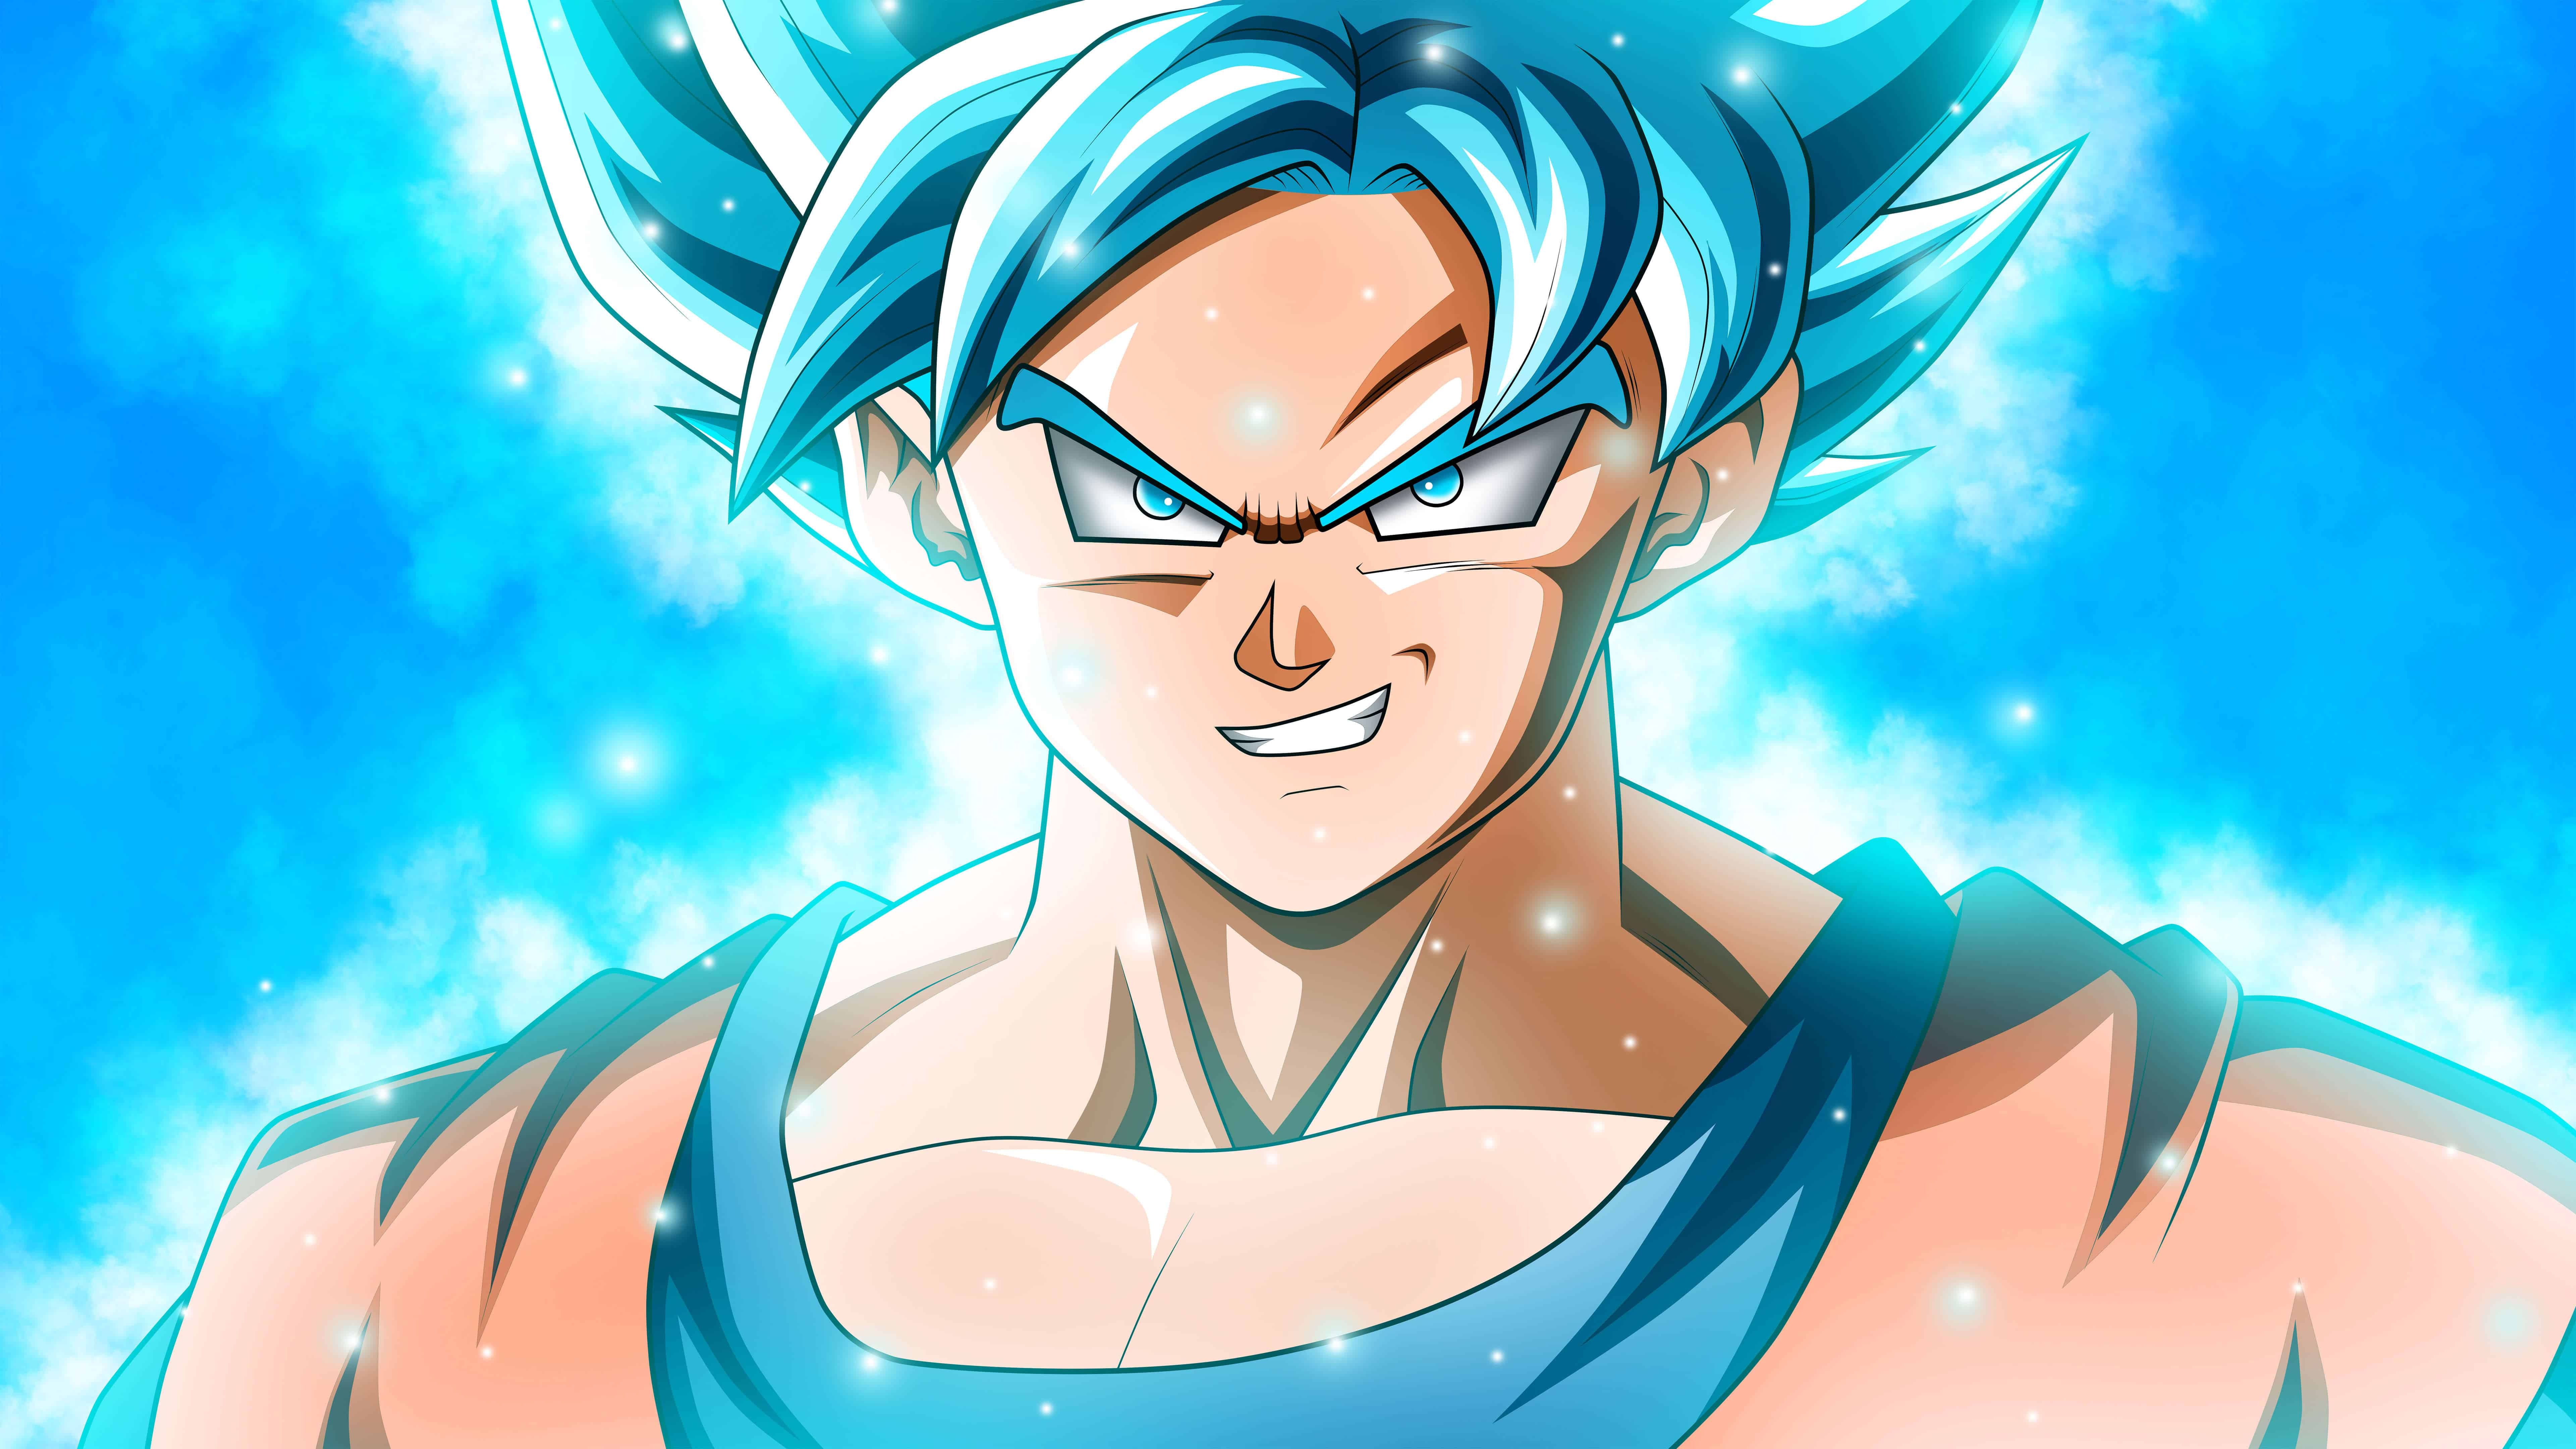 Dragon Ball Super Goku Uhd 8k Wallpaper Pixelz